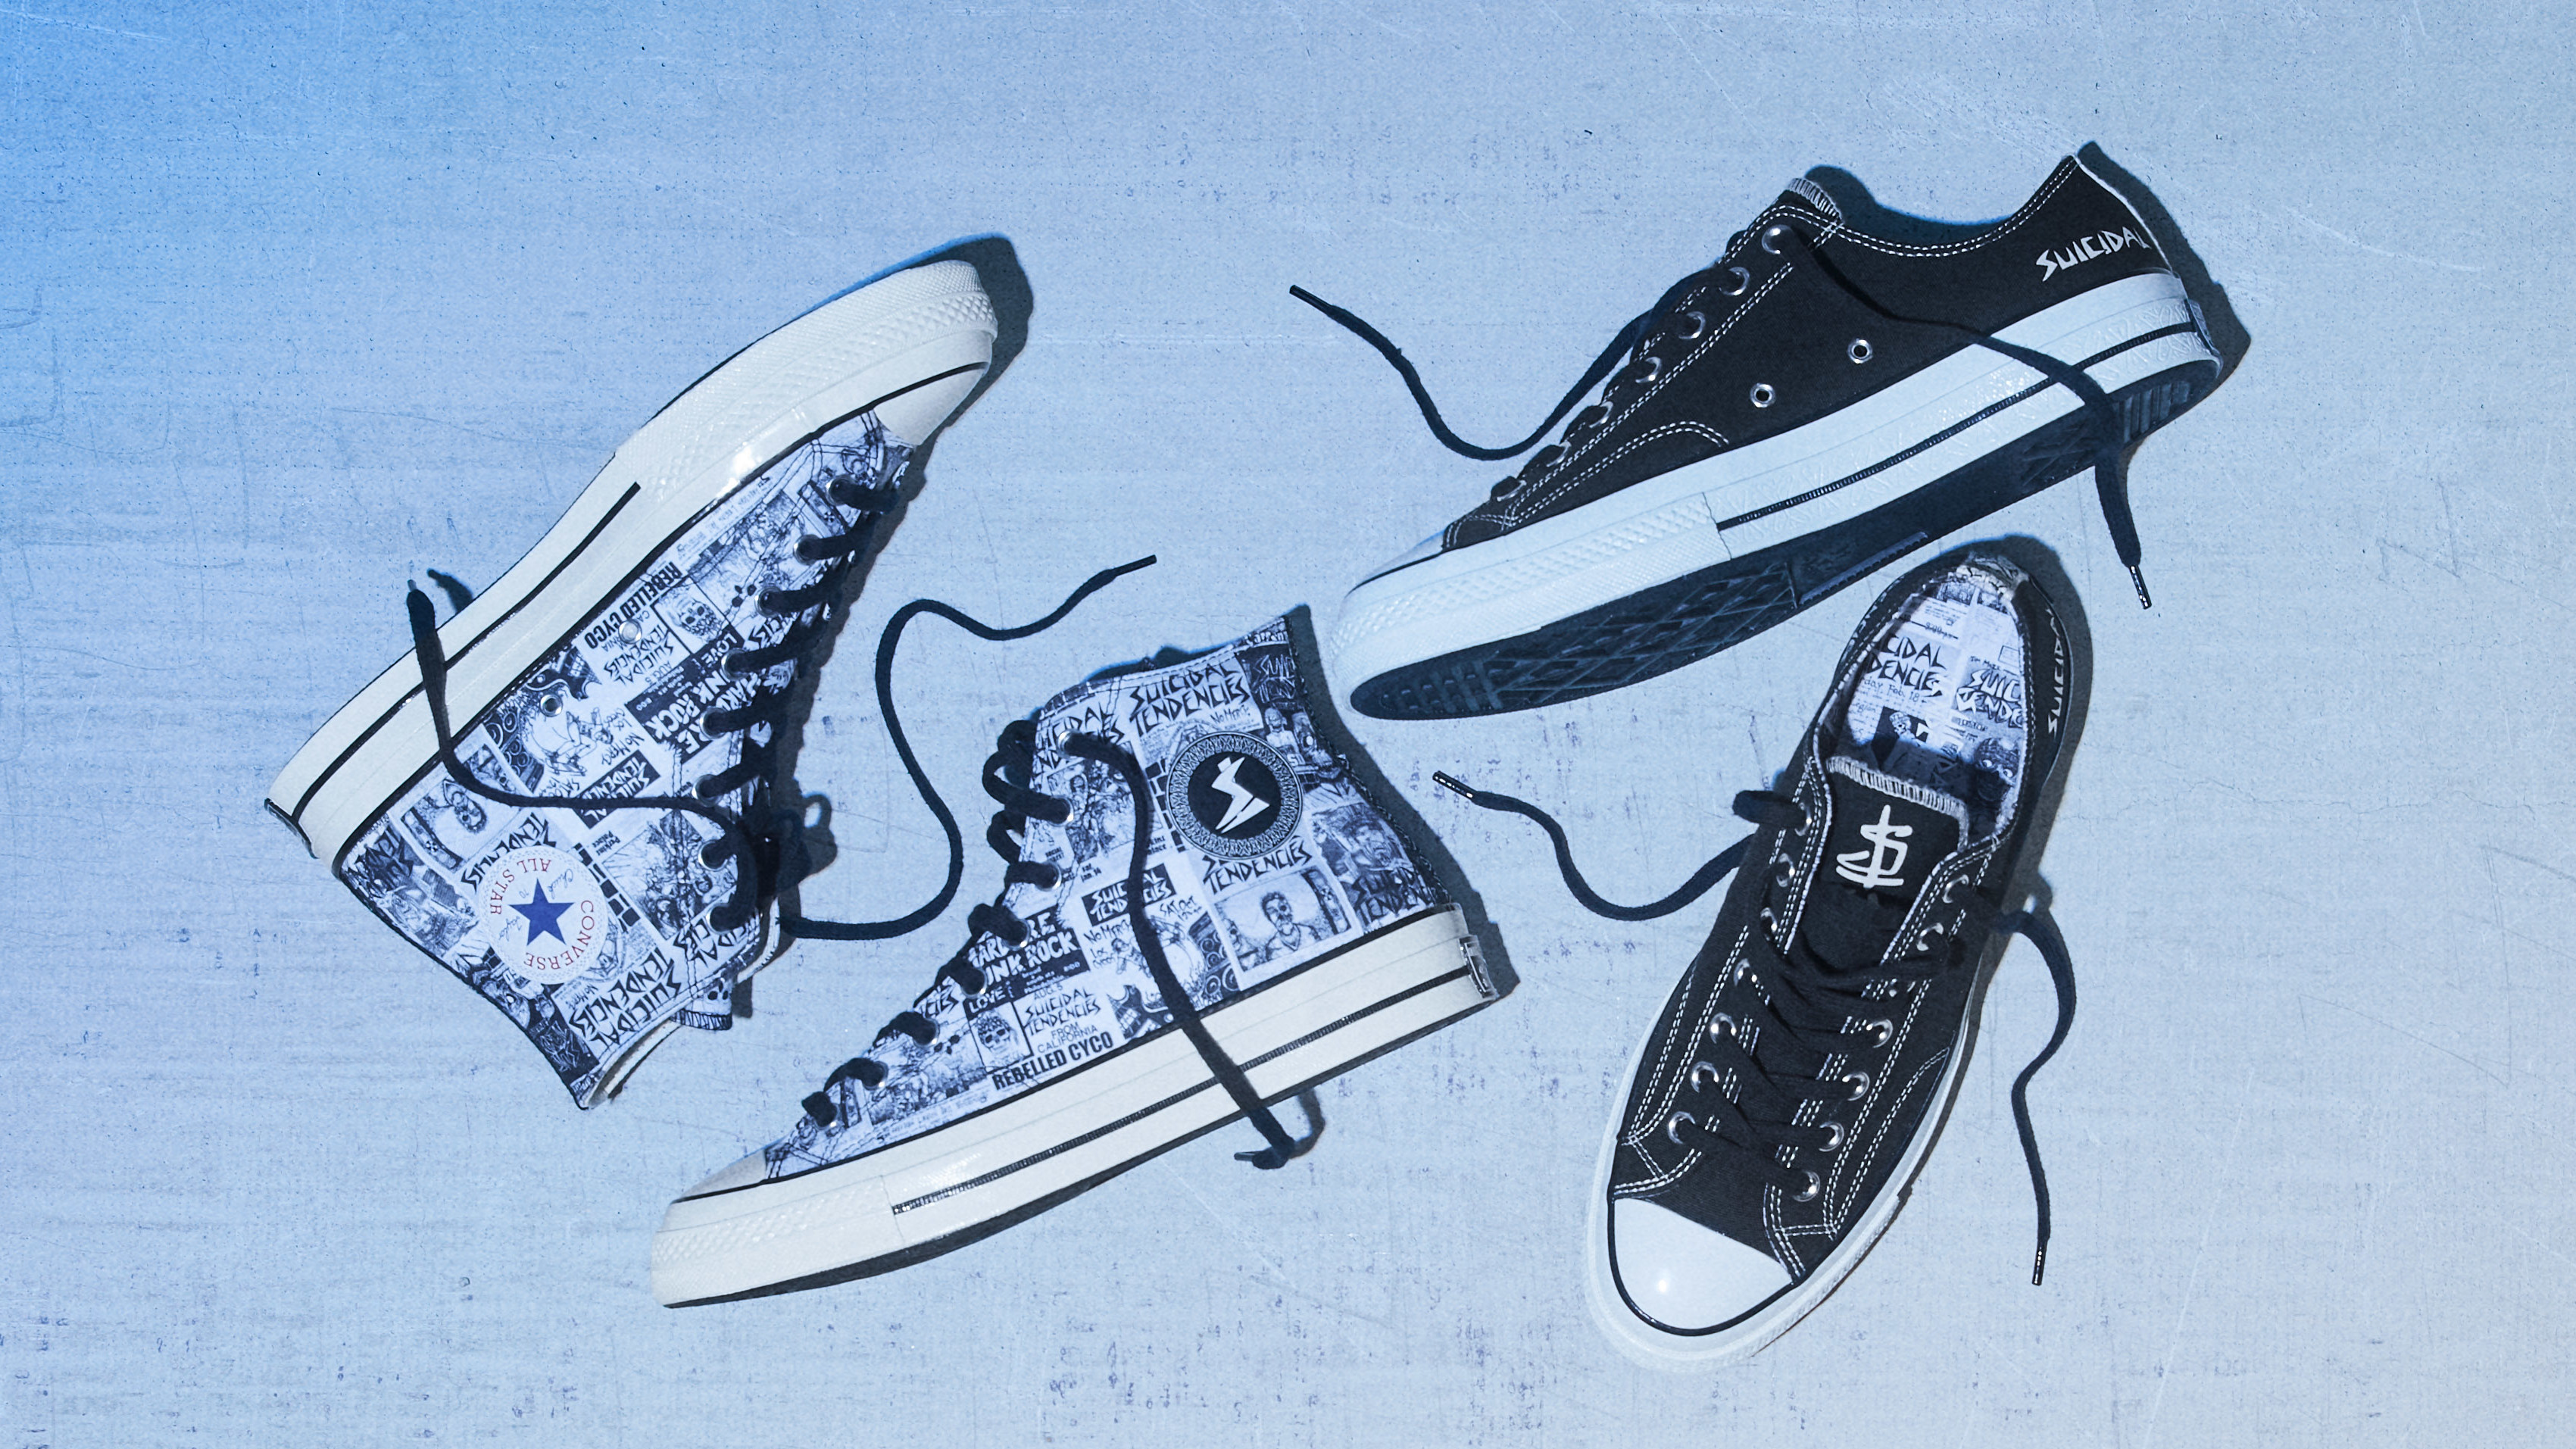 bda01d1d7a0465 Suicidal Tendencies x Converse Chuck 70 Hi and Low Release Date ...